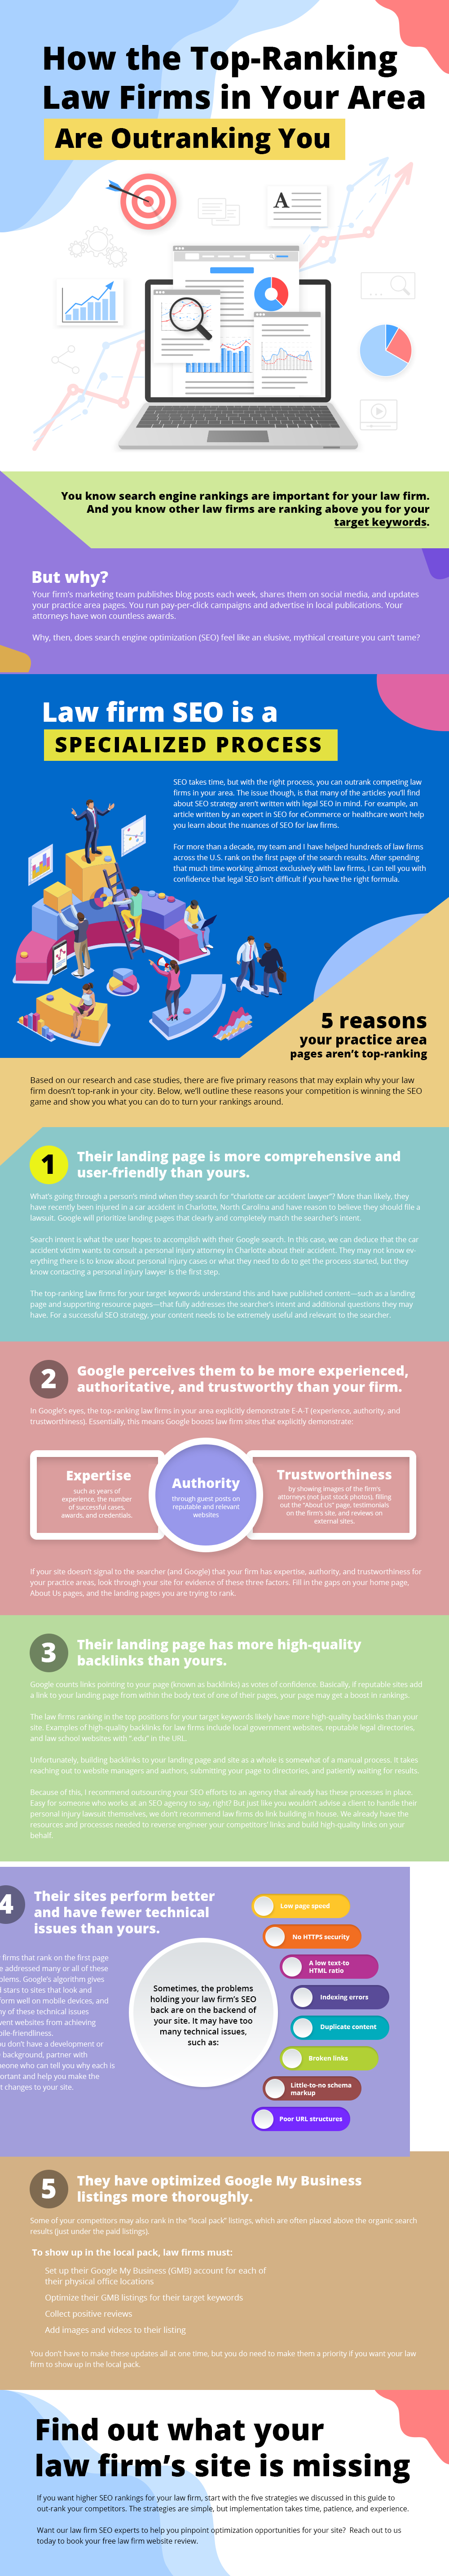 Law Firm SEO Infographic about how to outrank the competition